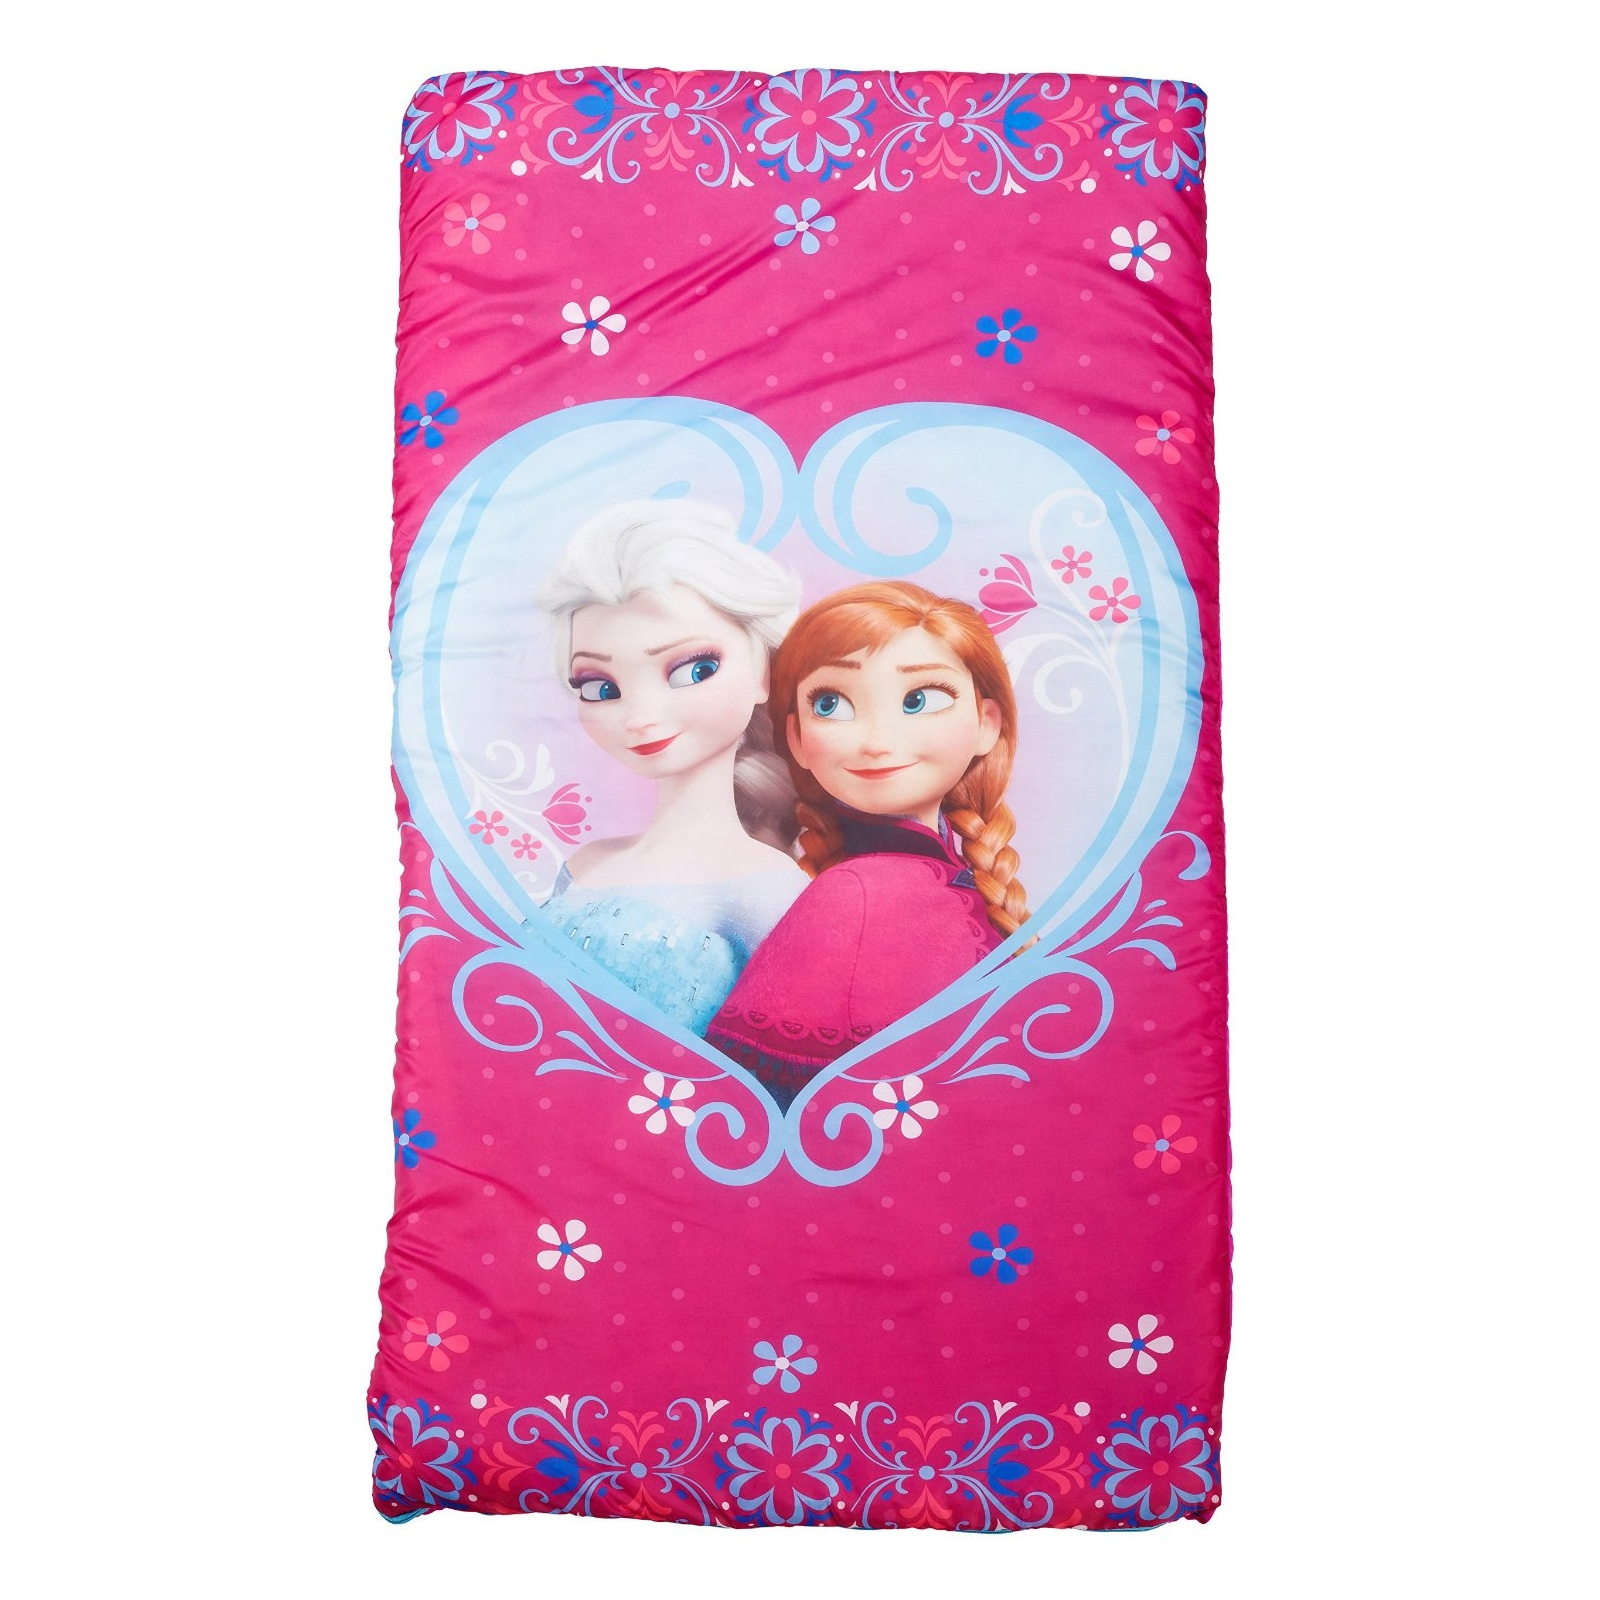 e5c7dbb4145 Disney Frozen Indoor Sleeping Bag and Backpack Set